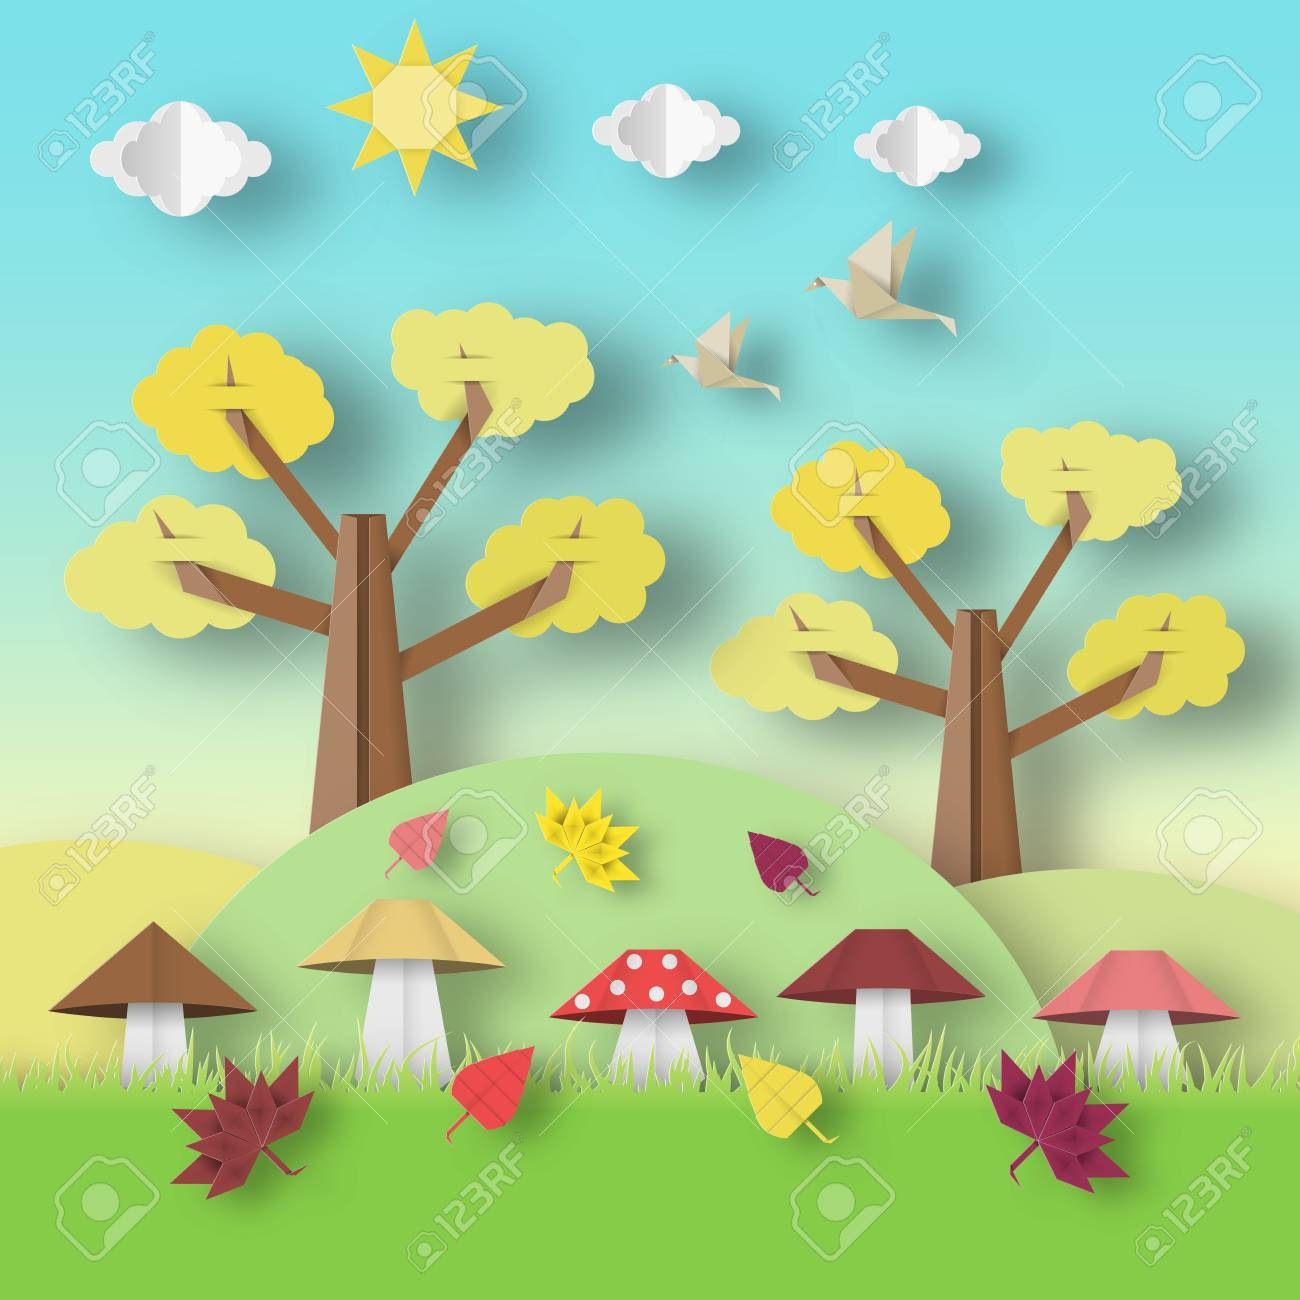 Autumn Origami Landscape With Clouds Sun Mushrooms Leaves Birds Trees